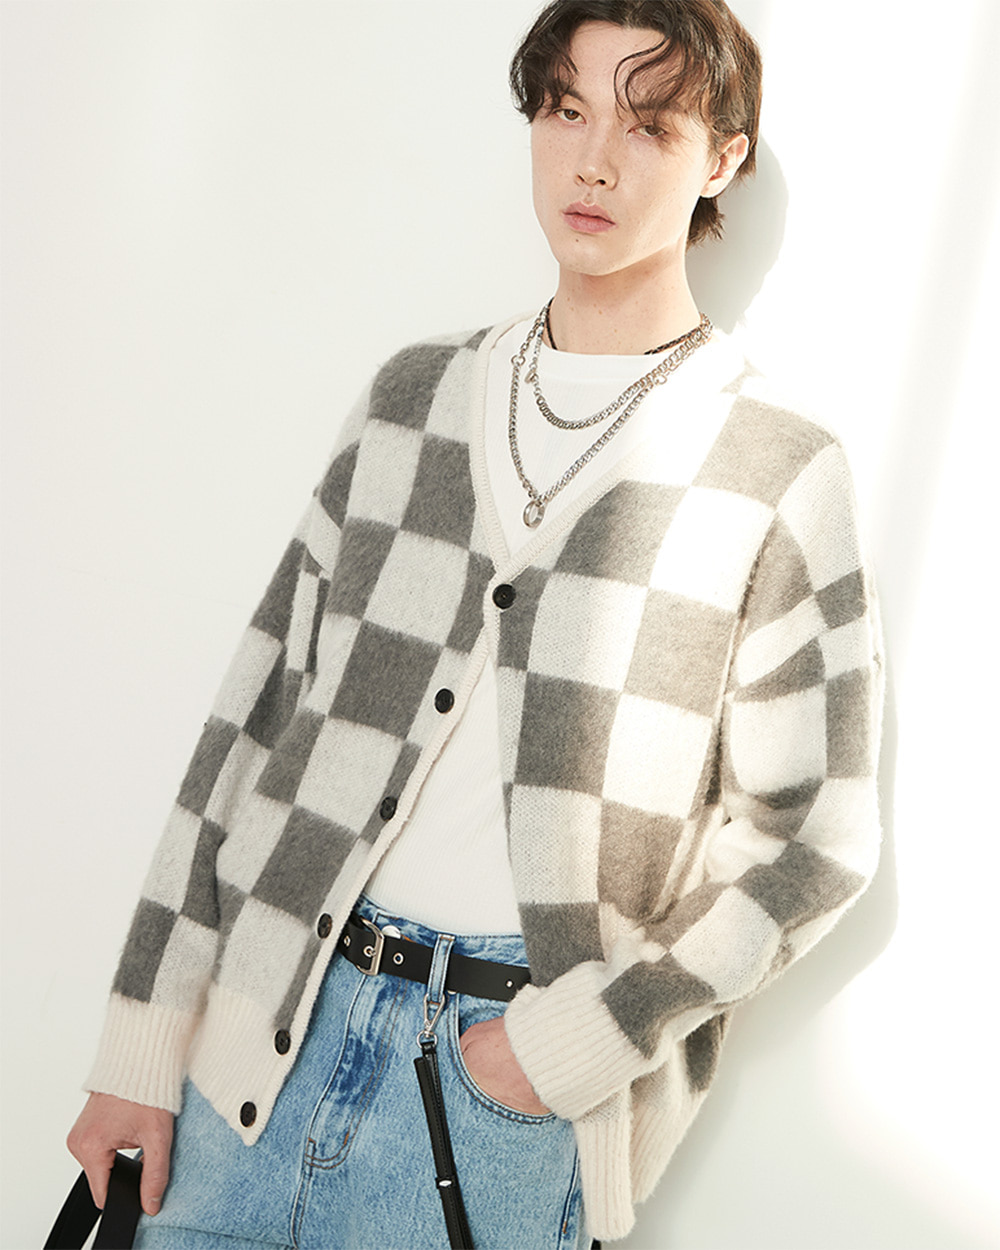 HALEINE알렌느 GREYCREAM chekered mohair reversible cardigan(NJ013)